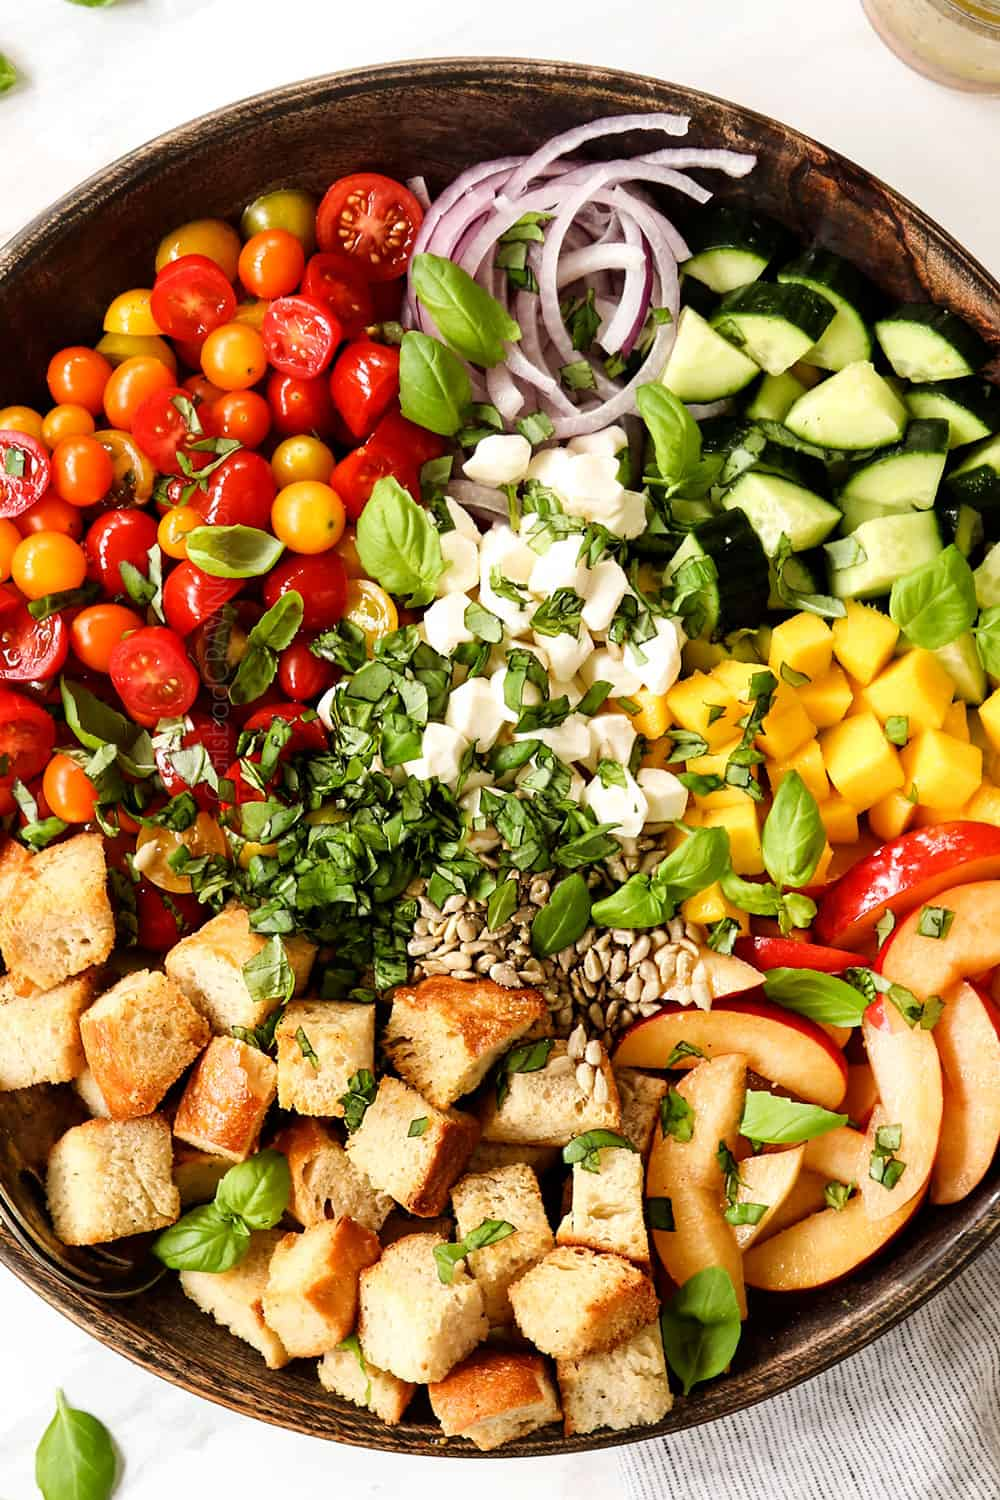 showing how to make Panzanella recipe by adding tomatoes, onions, cucumbers, bread, basil and mozzarella to a large serving bowl